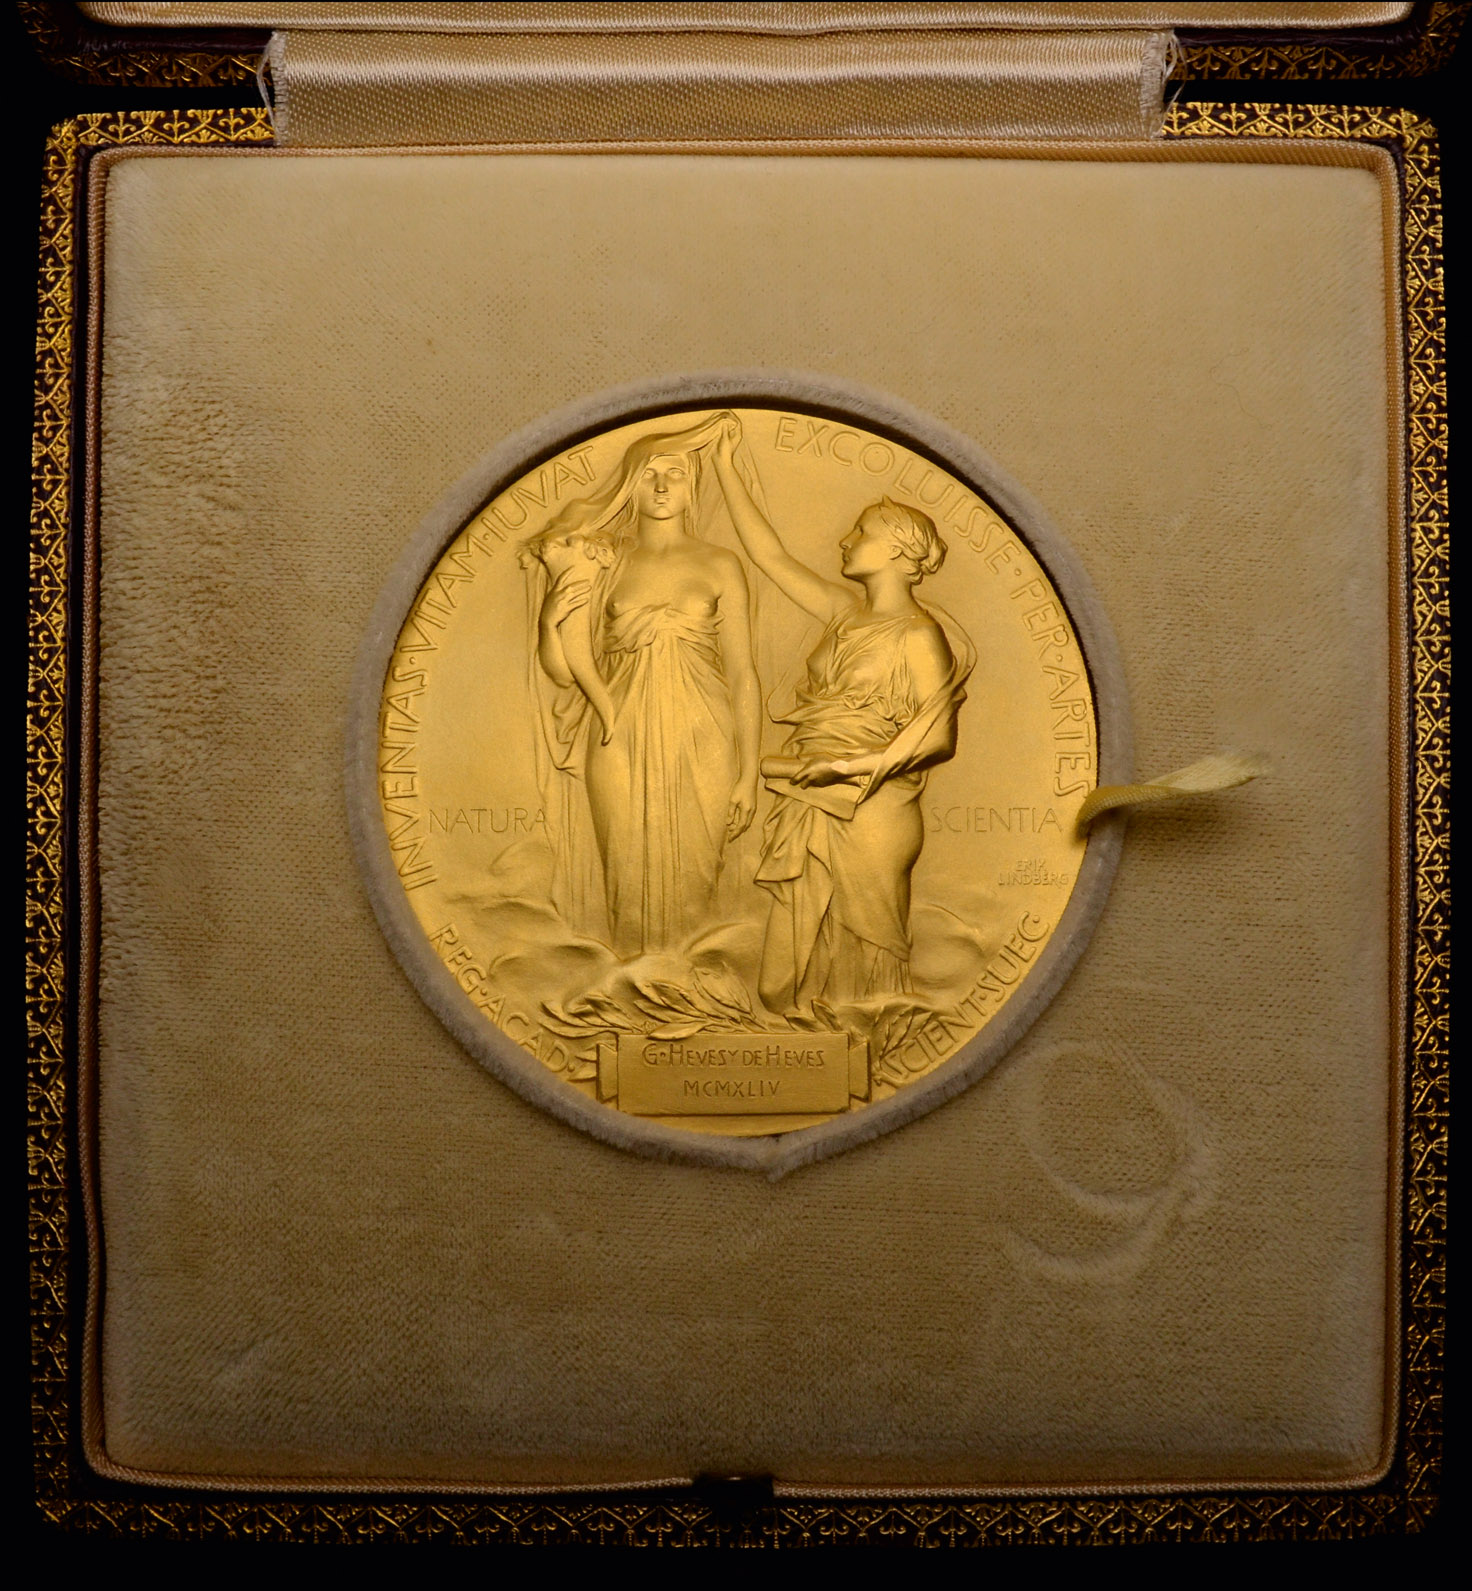 Lot 77 - The Nobel Prize in Chemistry and three further medals awarded to George de Hevesy (1885-1966),